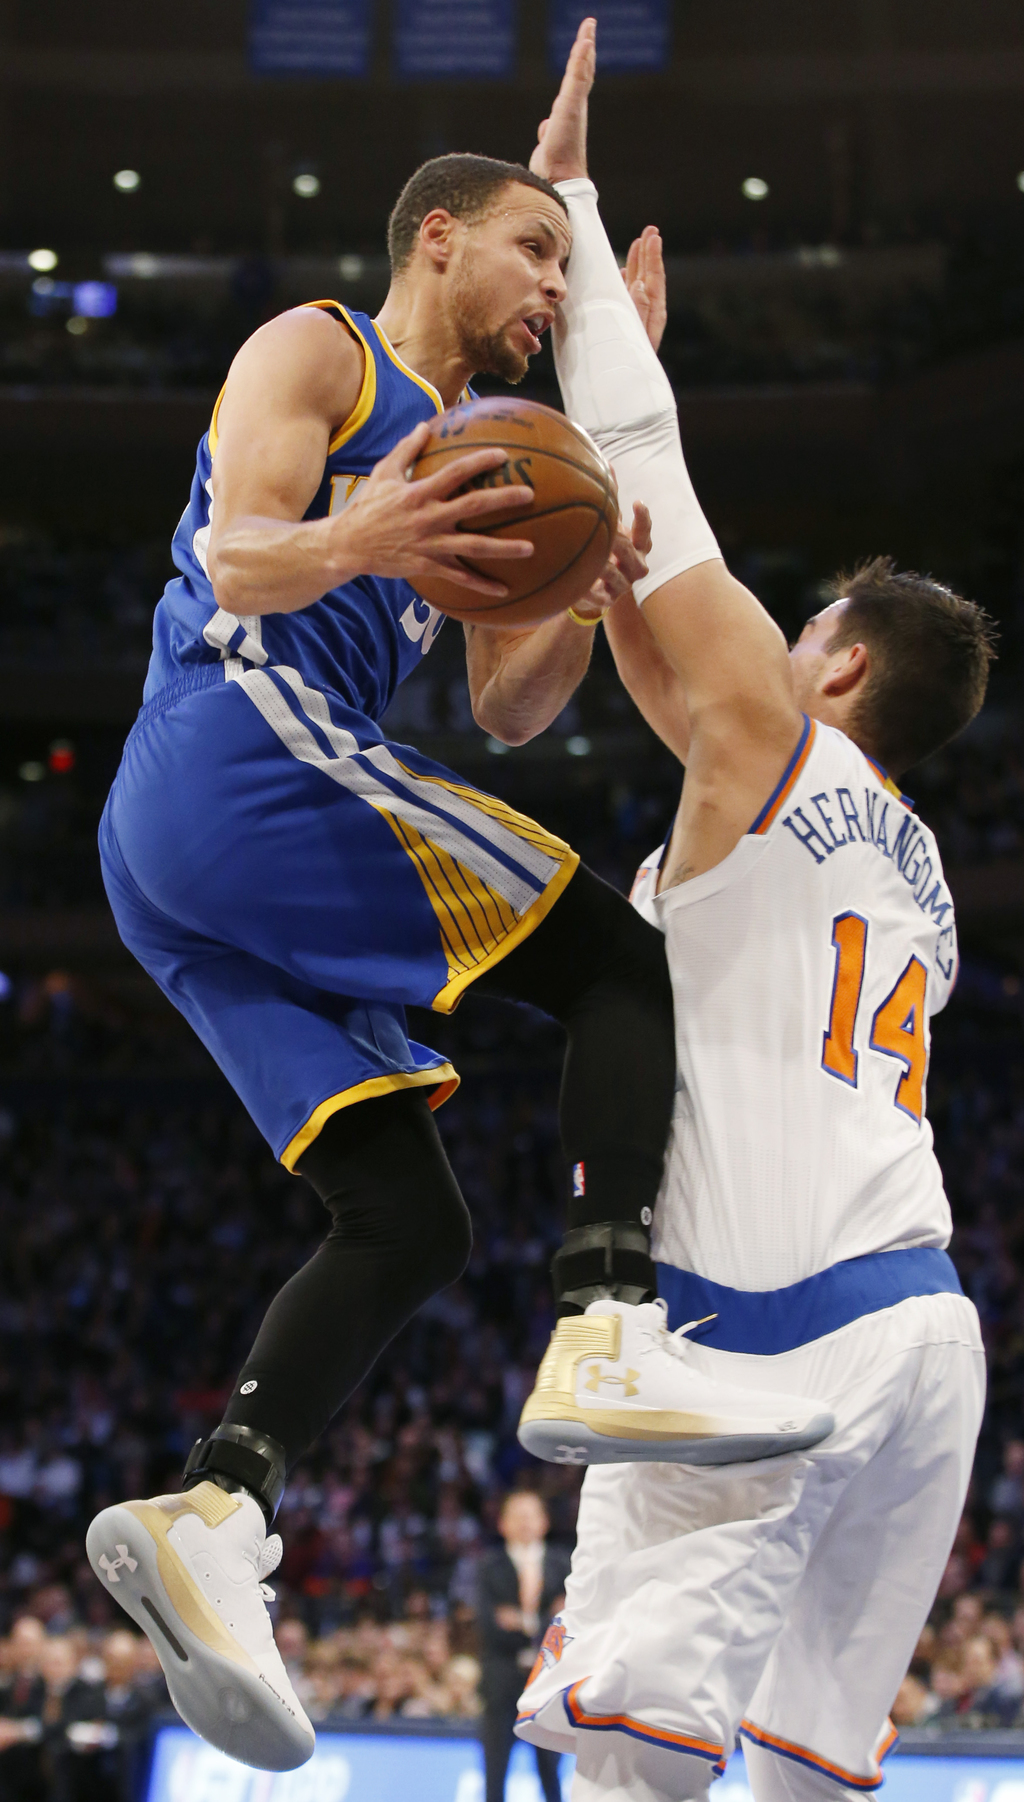 Golden State Warriors guard Stephen Curry, left, bumps into New York Knicks center Willy Hernangomez (14) as he goes up for a layup in ...